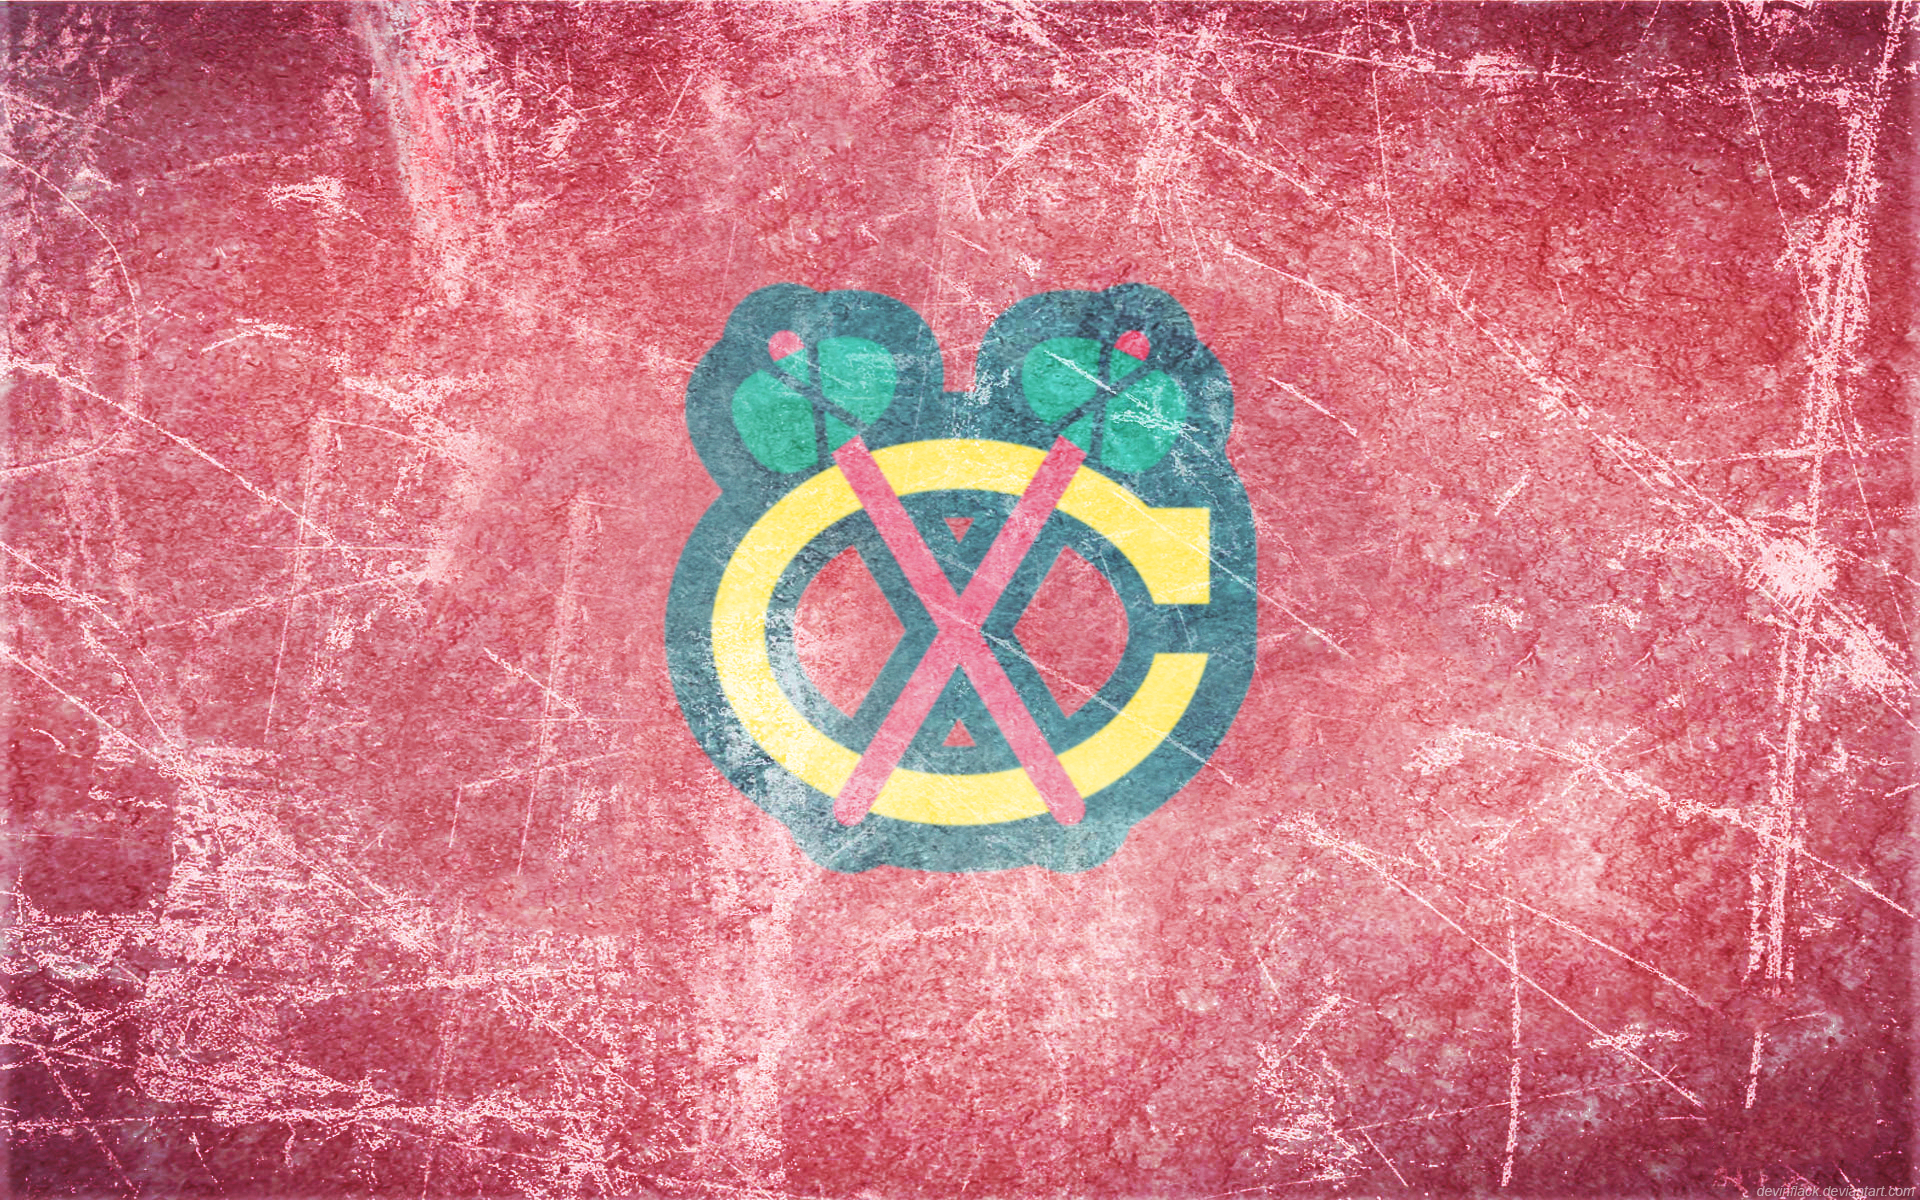 Blackhawks Ice Wallpaper by DevinFlack 1920 x 1200 1920x1200